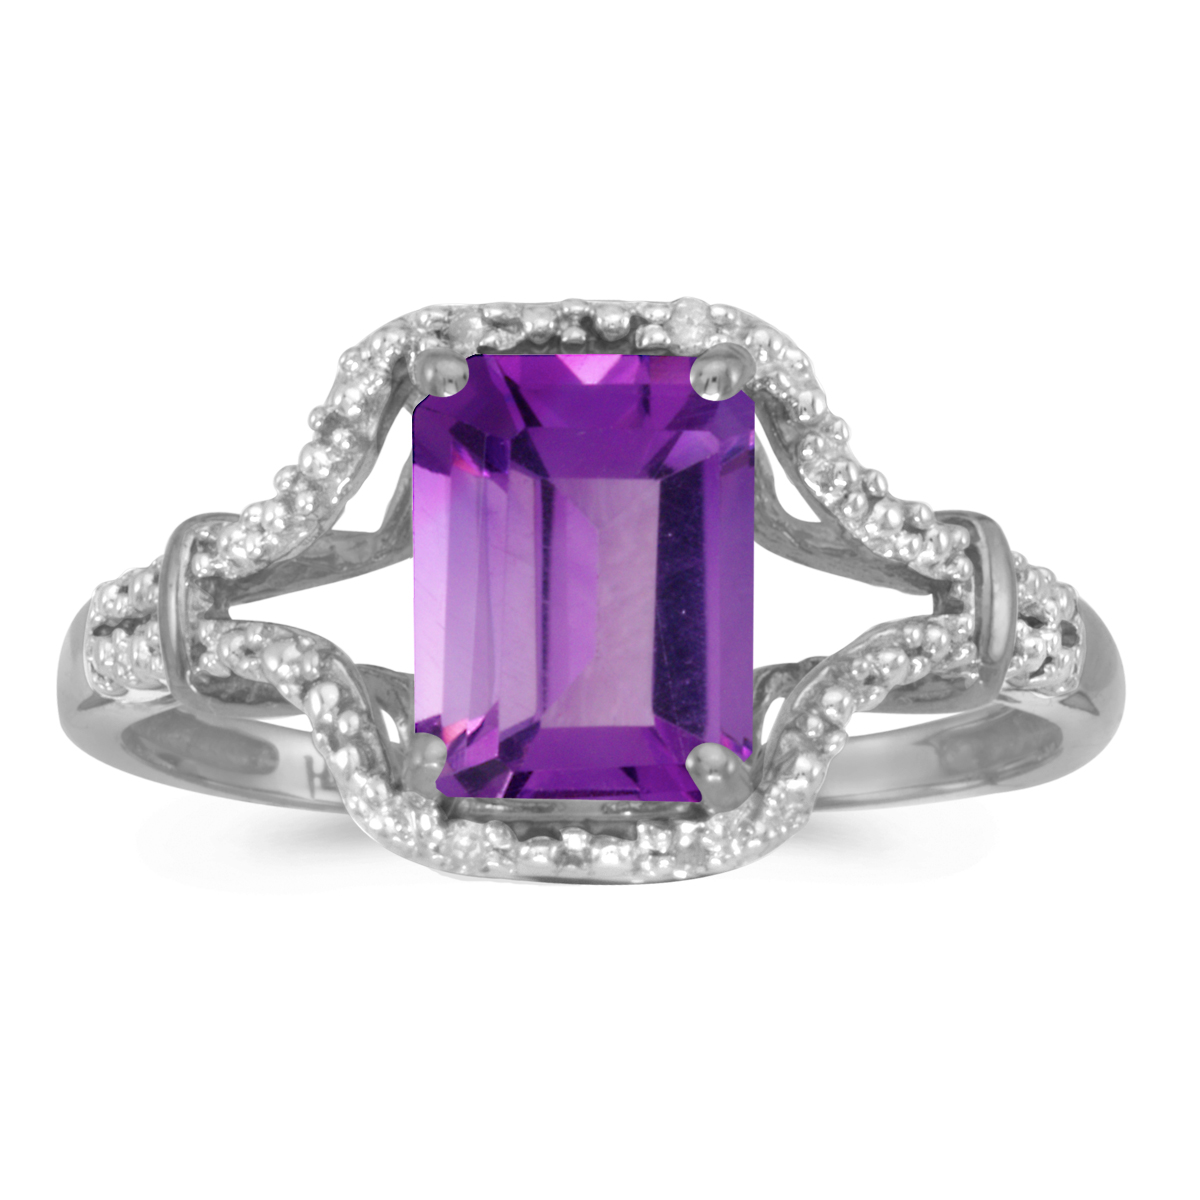 Direct-Jewelry 14k White Gold Emerald-cut Amethyst And Diamond Ring